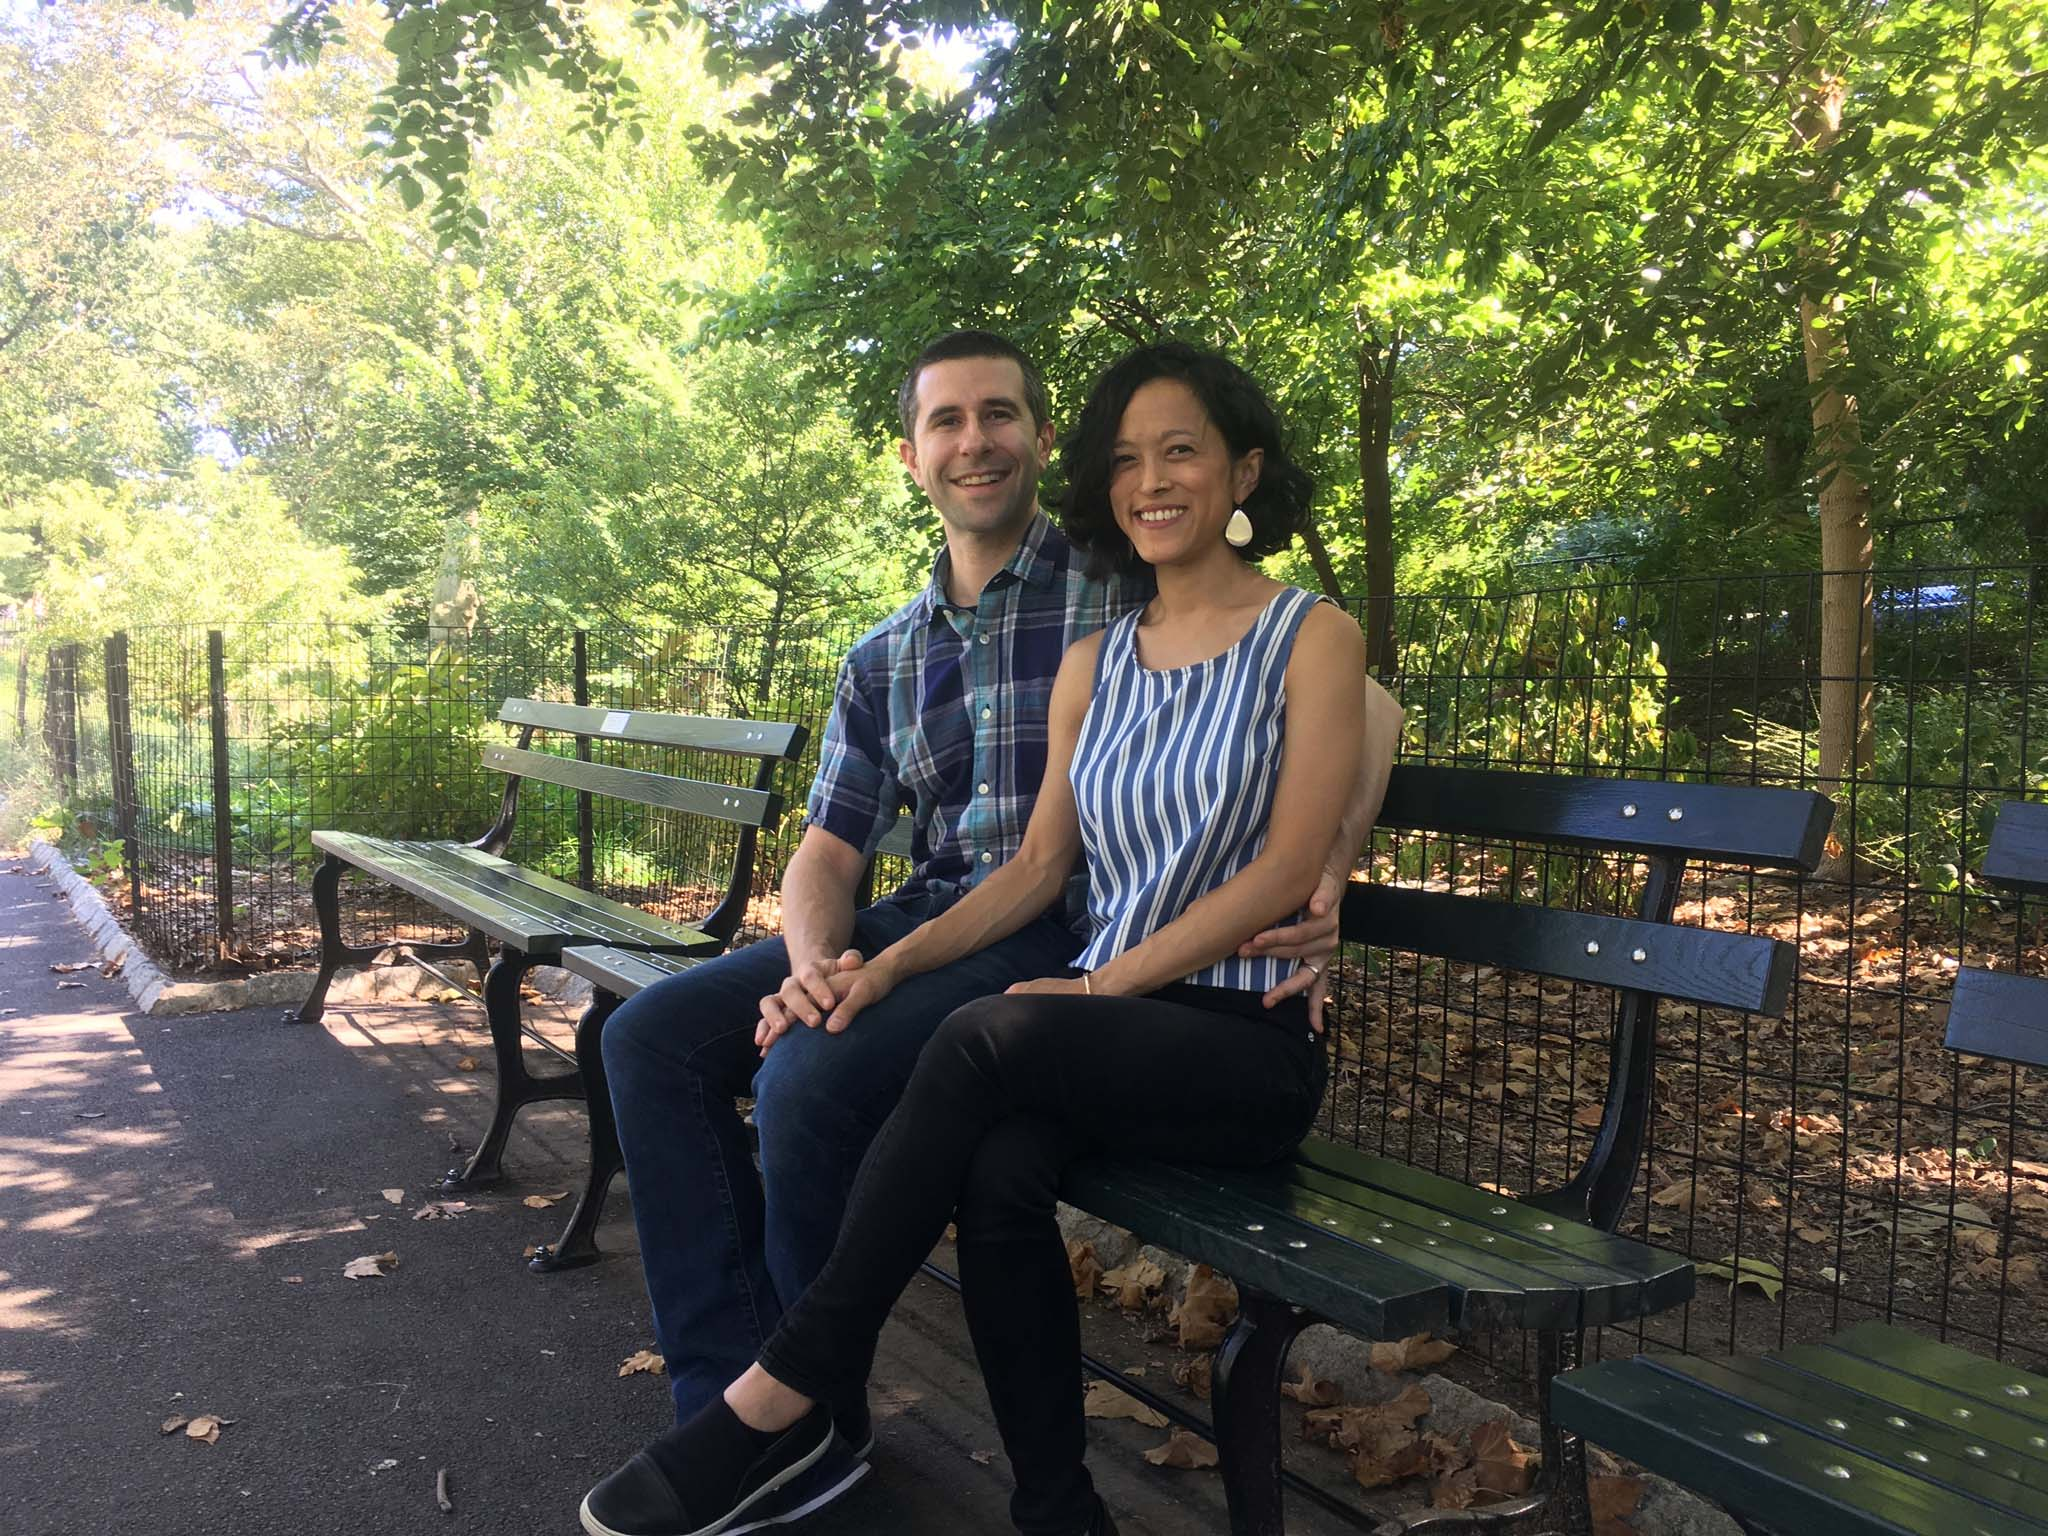 central park | Andrew and Tiana's Adoption Profile | 1-800-982-3678 | Friends in Adoption | https://www.friendsinadoption.org